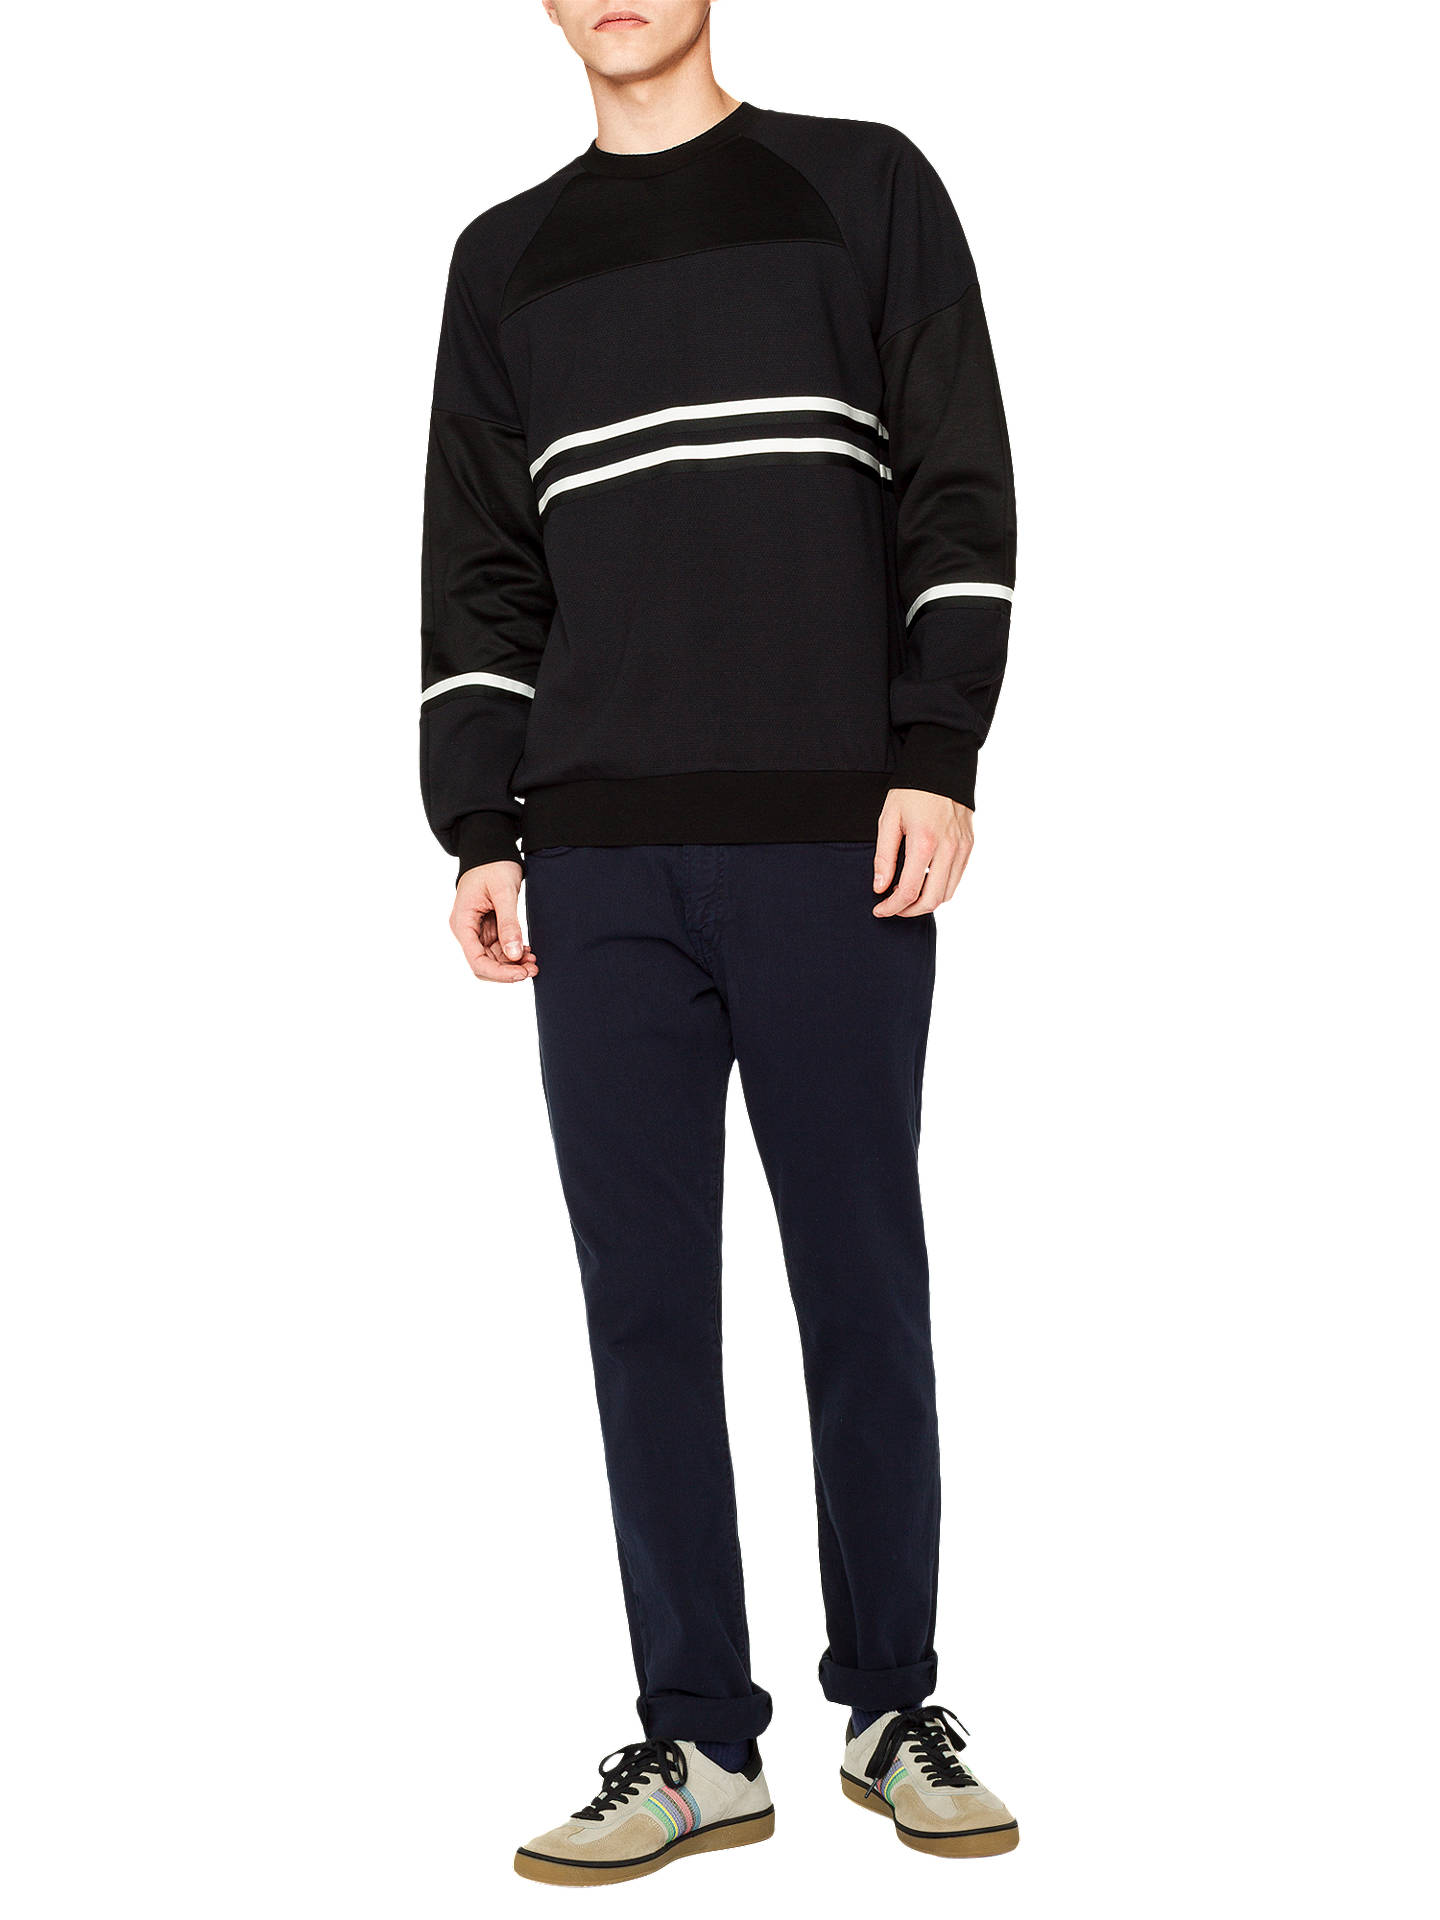 Buy PS Paul Smith Mixed Stripe Sweatshirt, Black, M Online at johnlewis.com